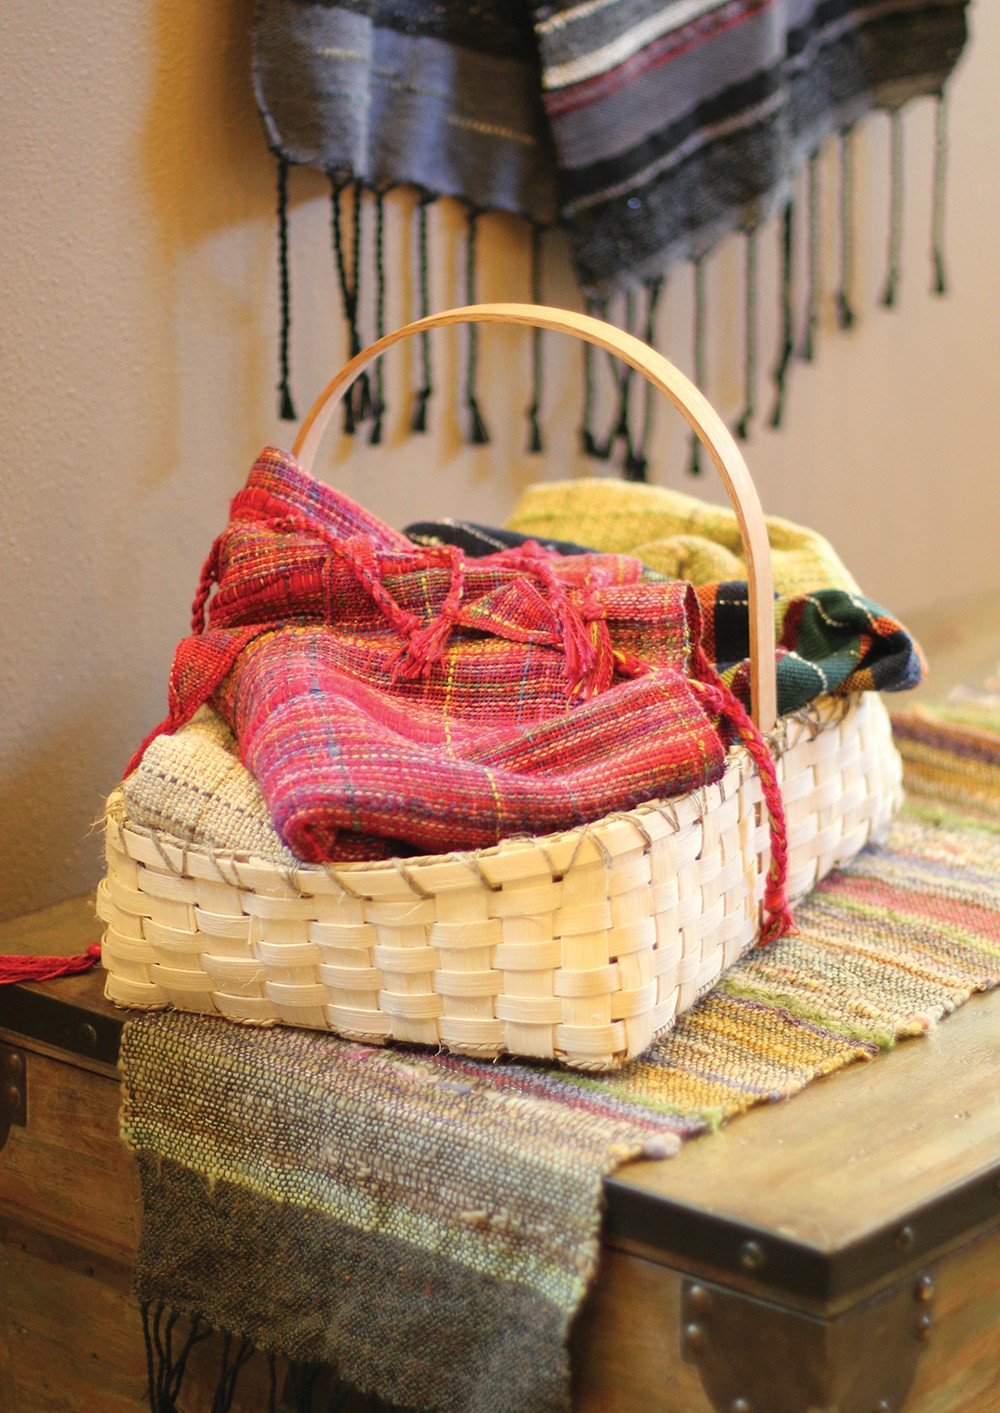 Sue Tye custom-dyes the fibers she weaves into tablerunners, throws and pillow covers - CARRIE SCOZZARO PHOTOS